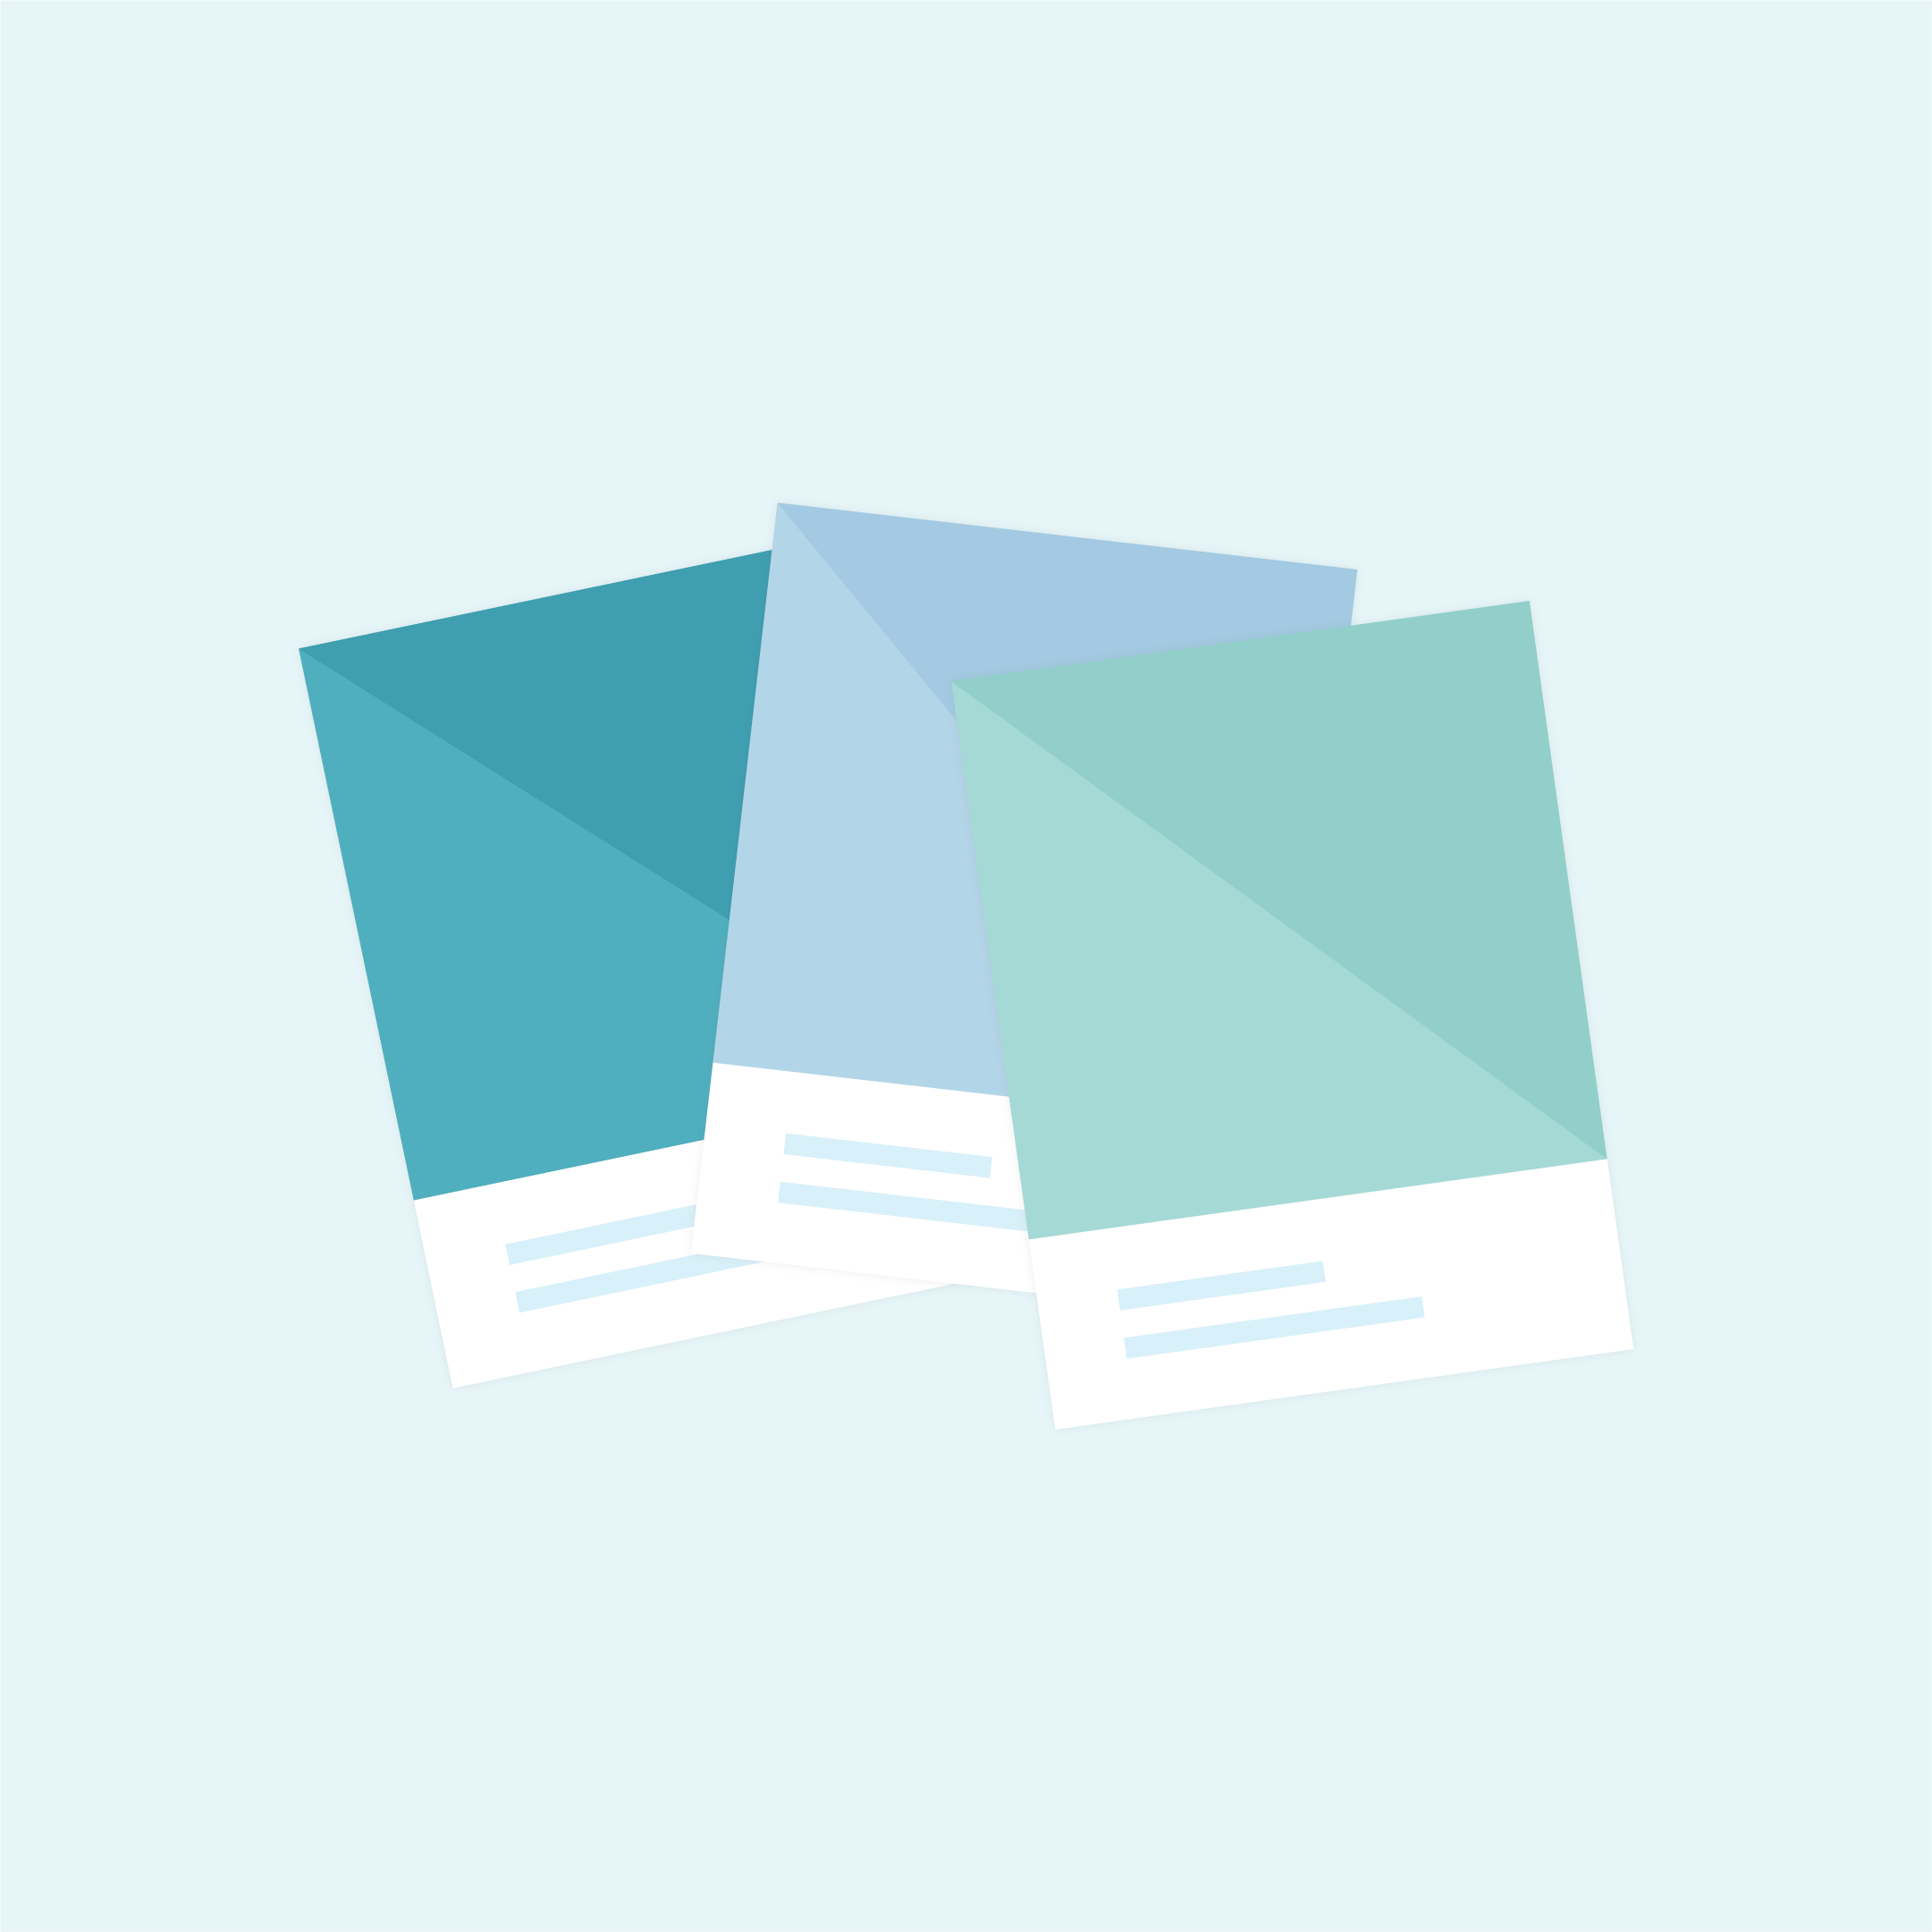 Vector illustration of Pantone chips/single Pantone swatches in flat design style